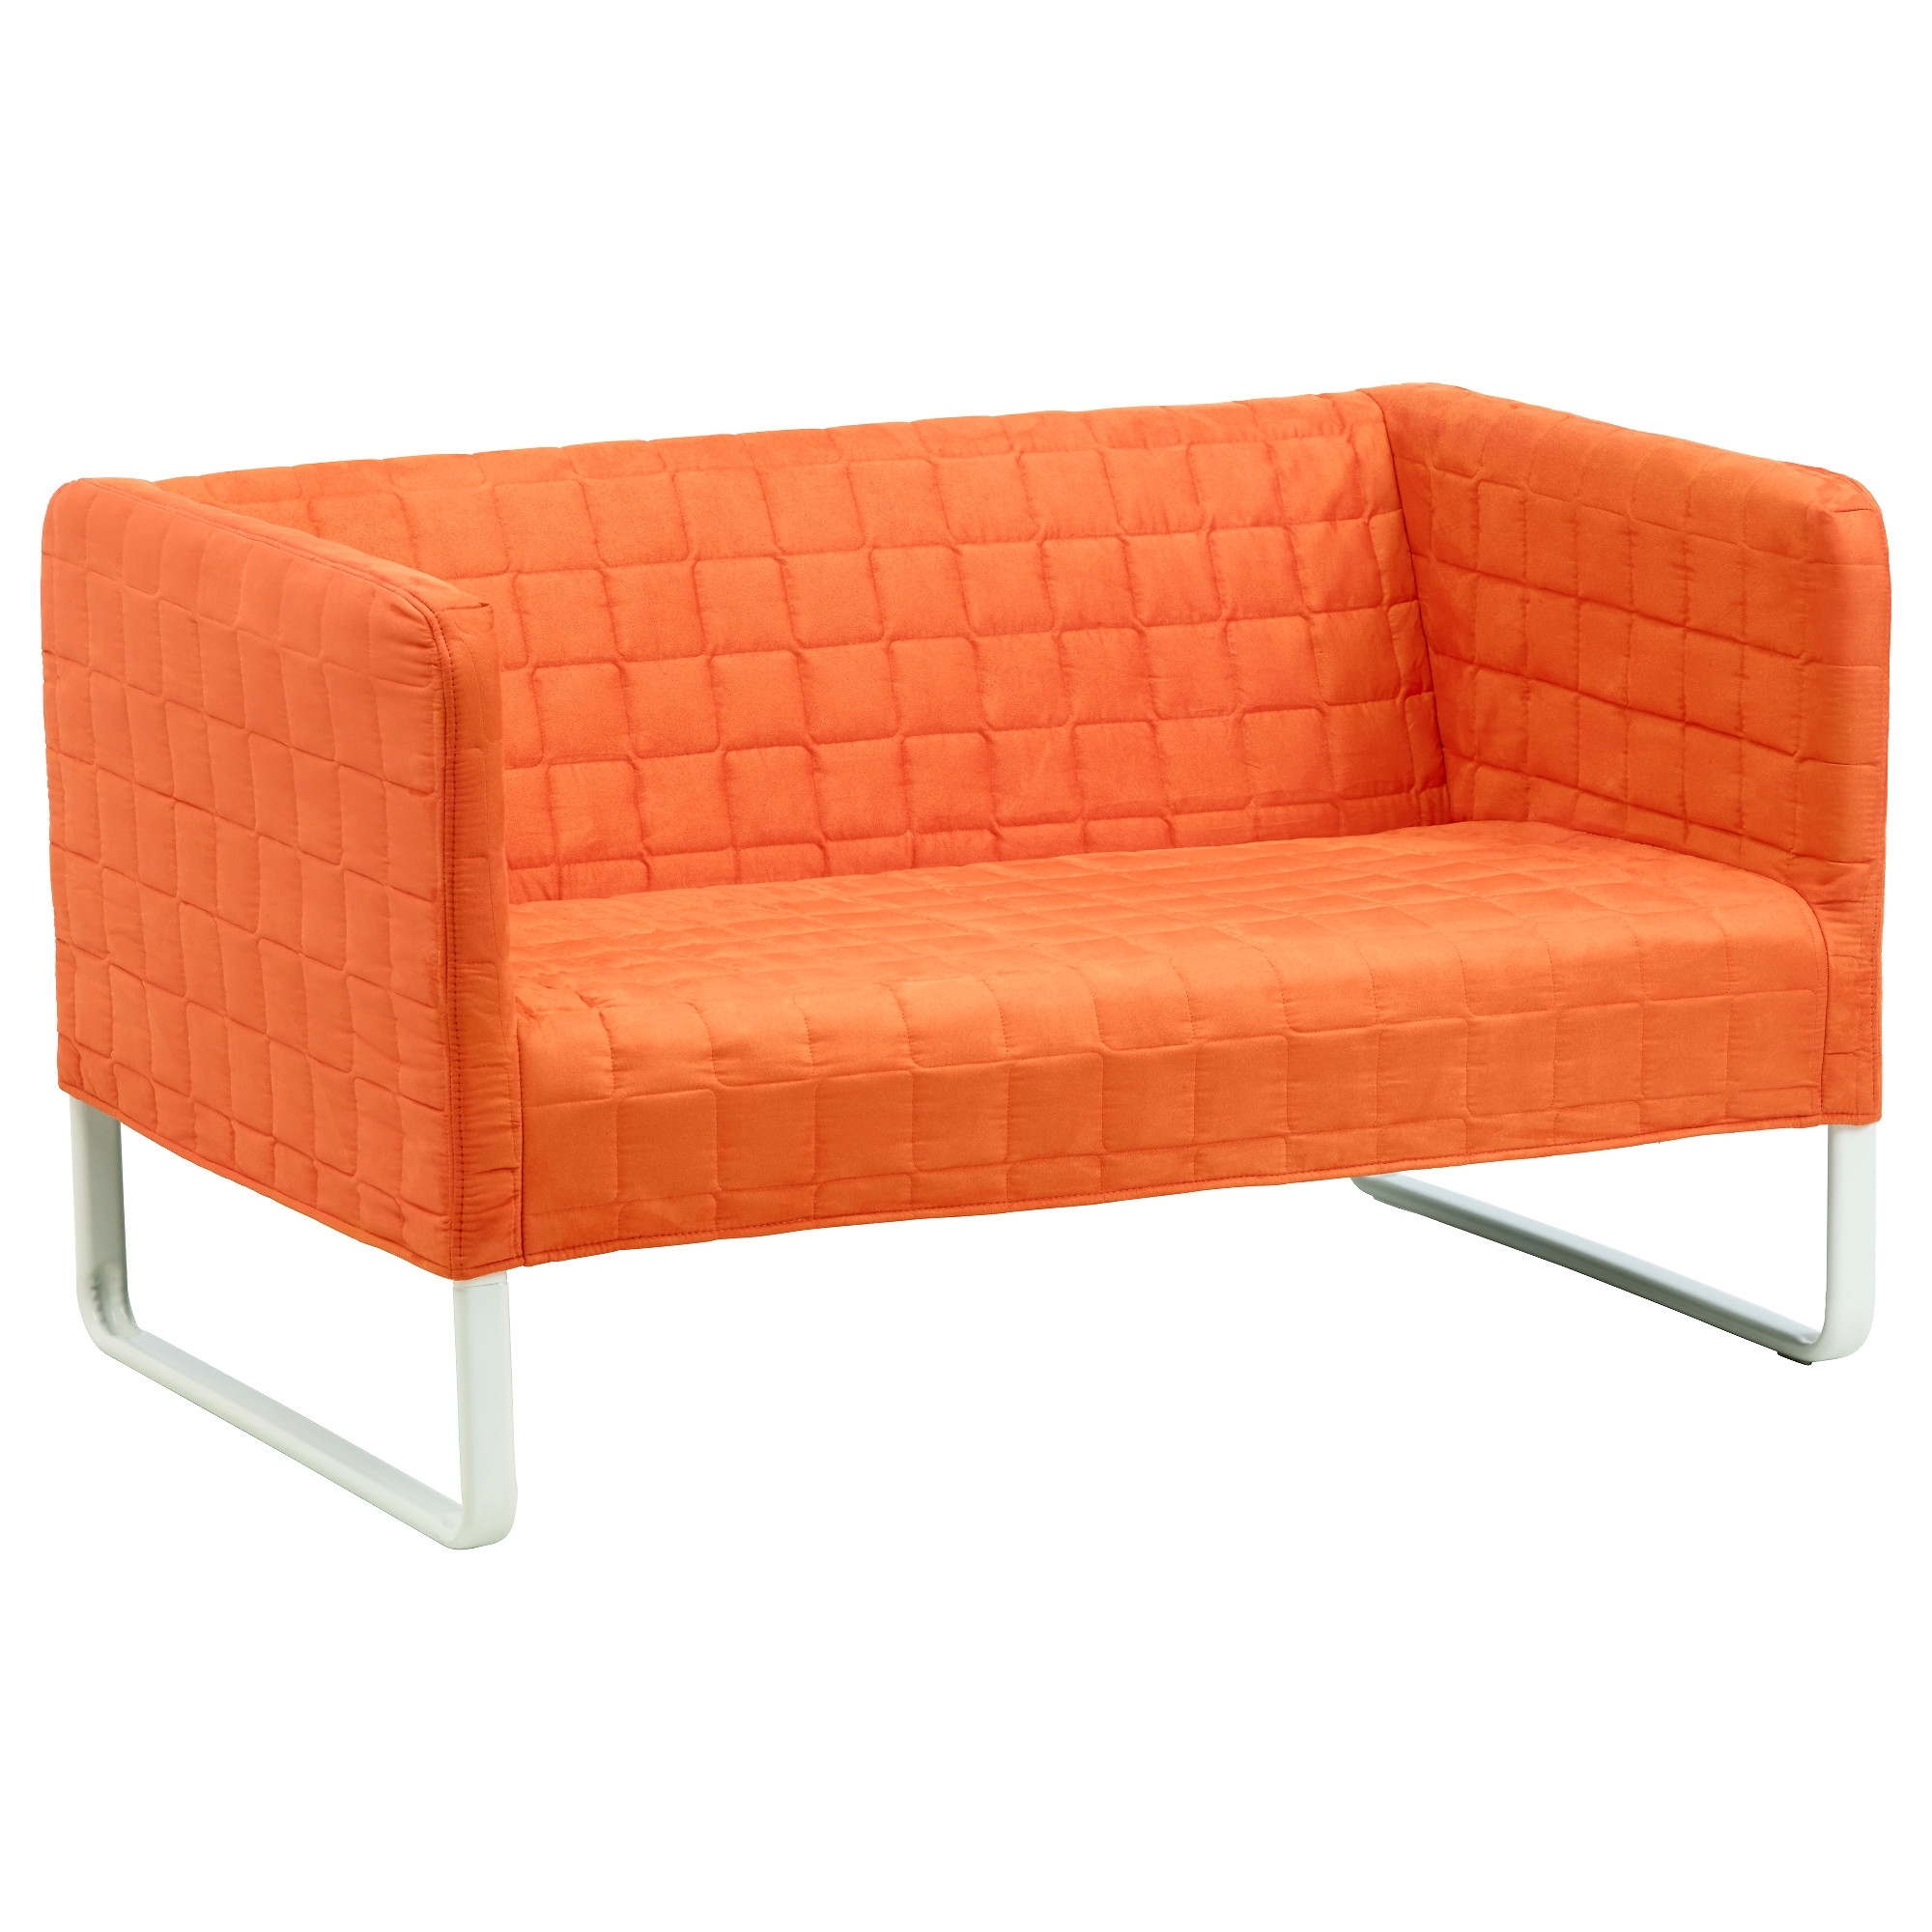 Knopparp 2 Seat Sofa Orange – Ikea In Current Small 2 Seater Sofas (Gallery 3 of 20)